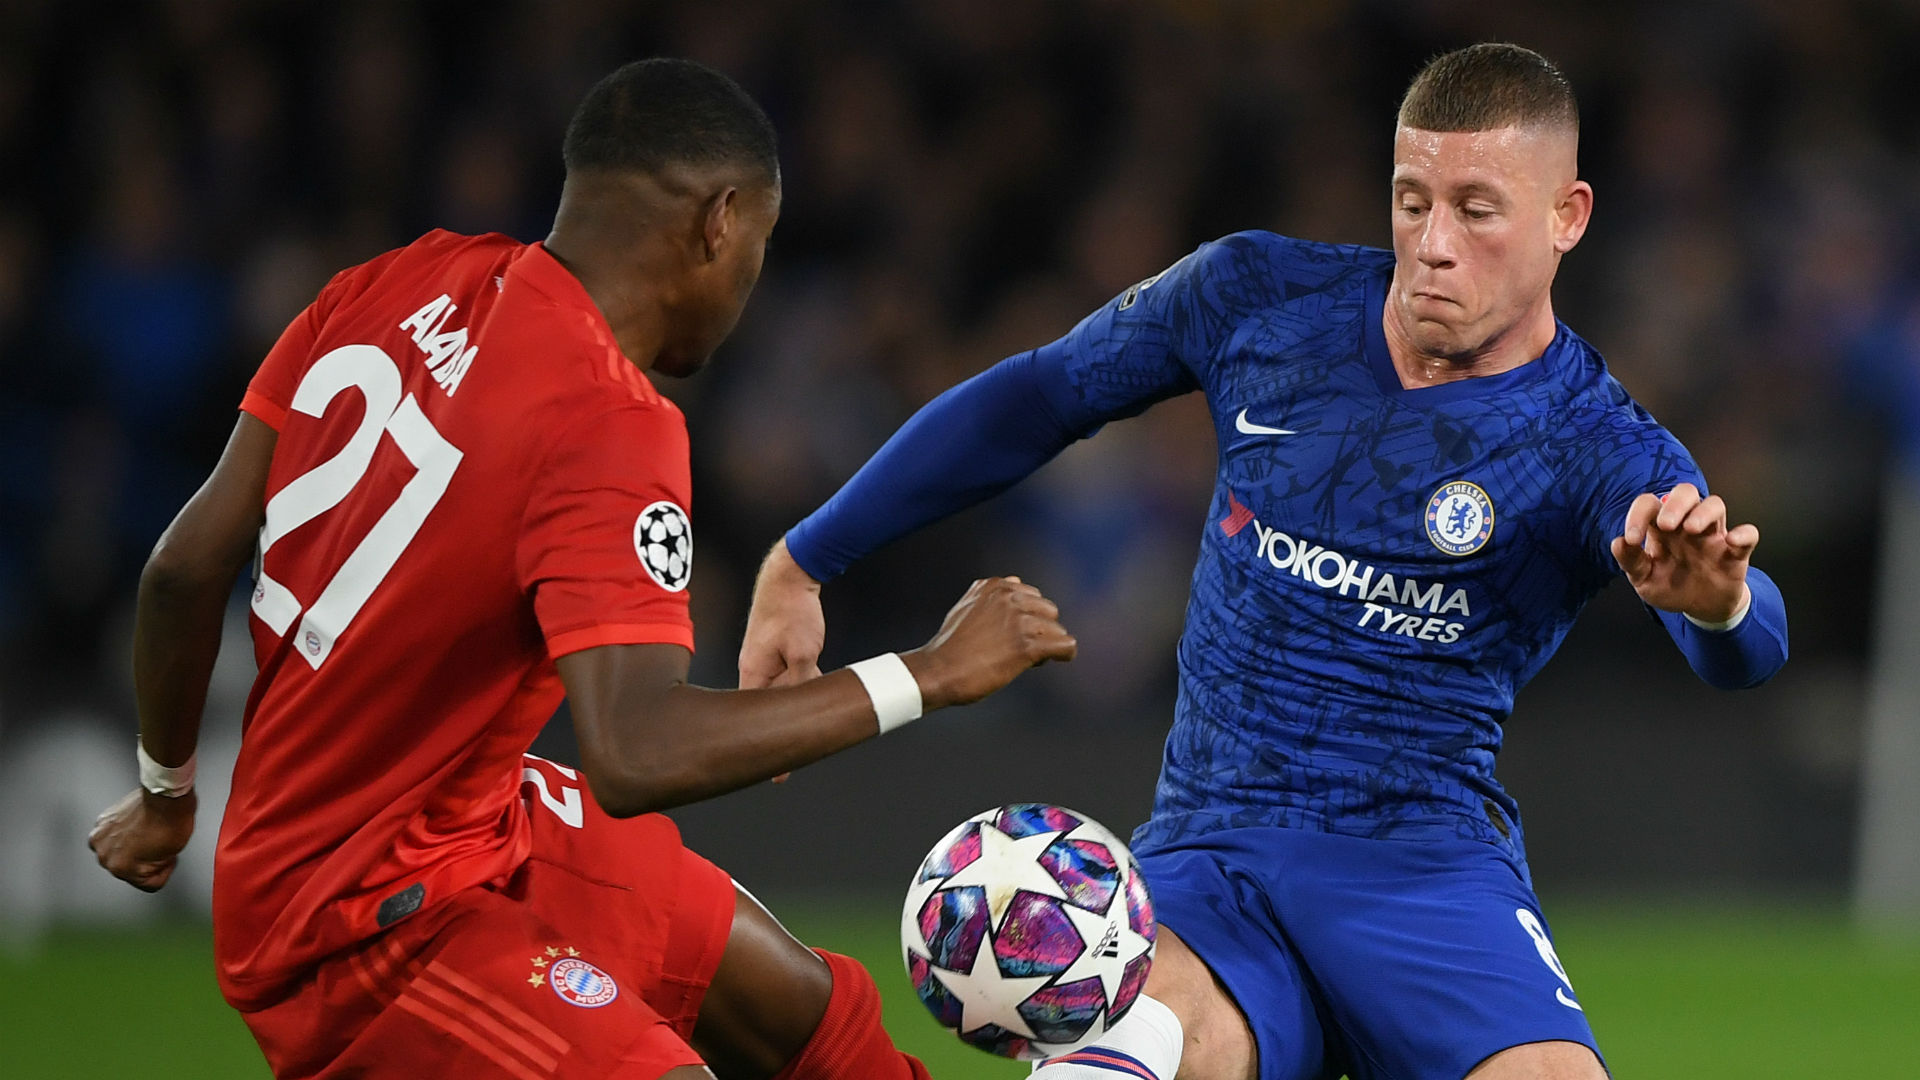 Champions League Live Stream How To Watch Bayern Munich Vs Chelsea In The Usa Sporting News